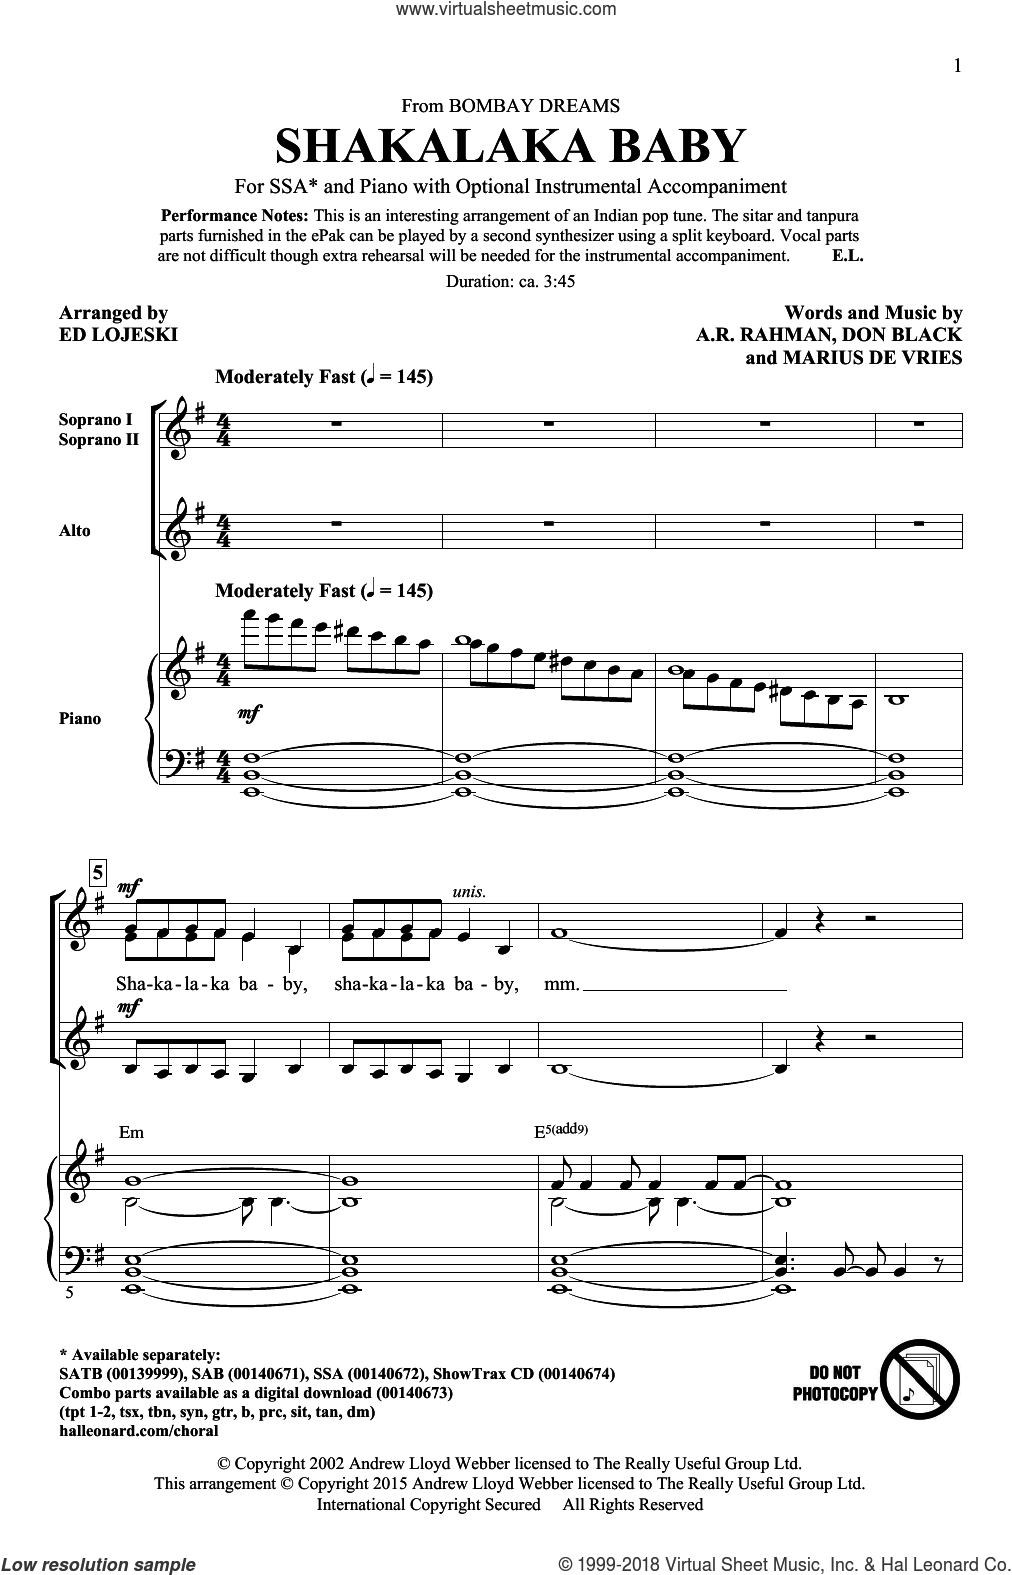 Shakalaka Baby (from Bombay Dreams) sheet music for choir (SSA: soprano, alto) by Don Black, Ed Lojeski, A.R. Rahman and Marius De Vries, intermediate skill level